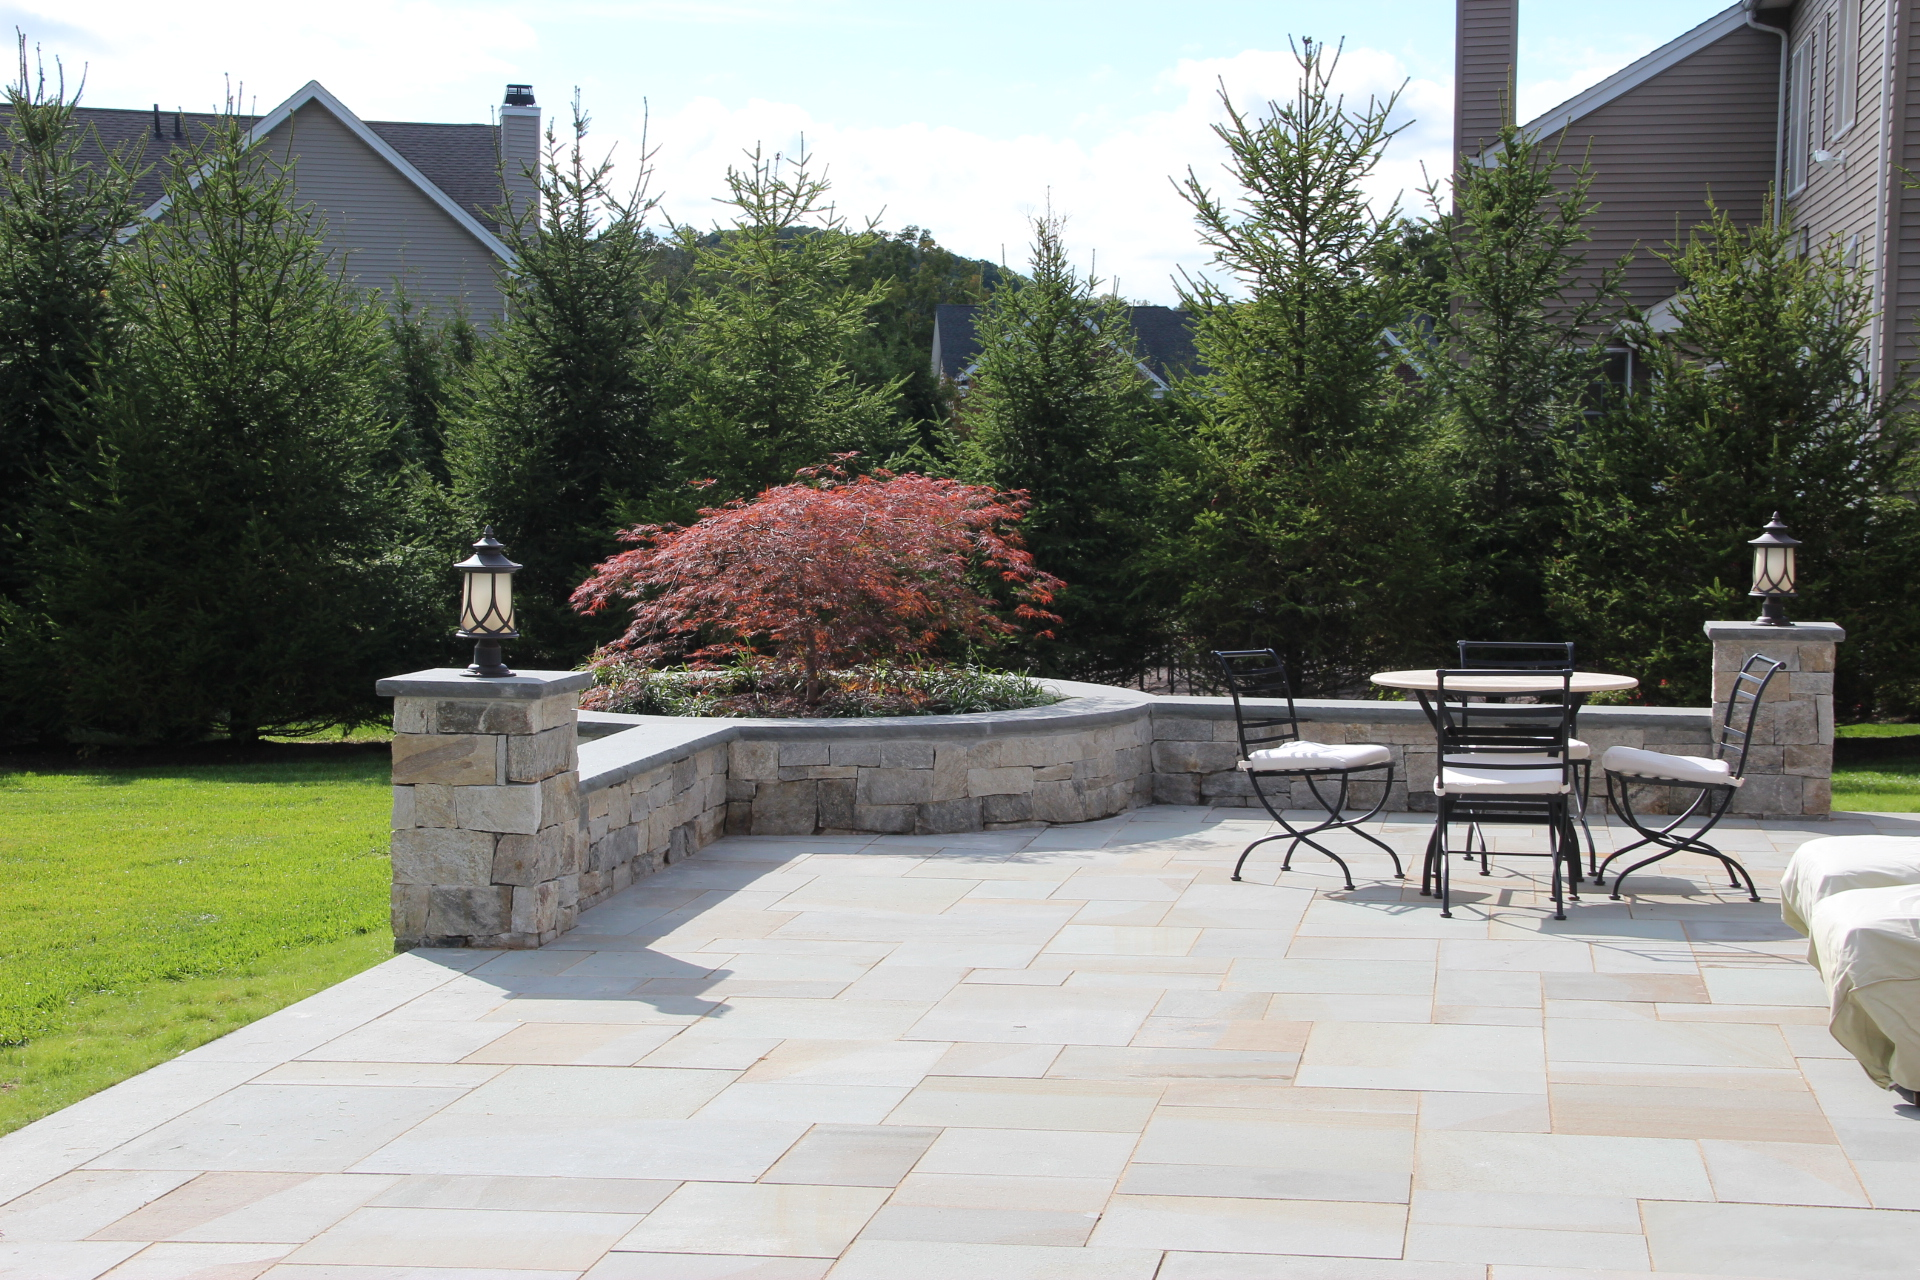 Planning a Backyard Remodel? Read These Landscape Construction Ideas